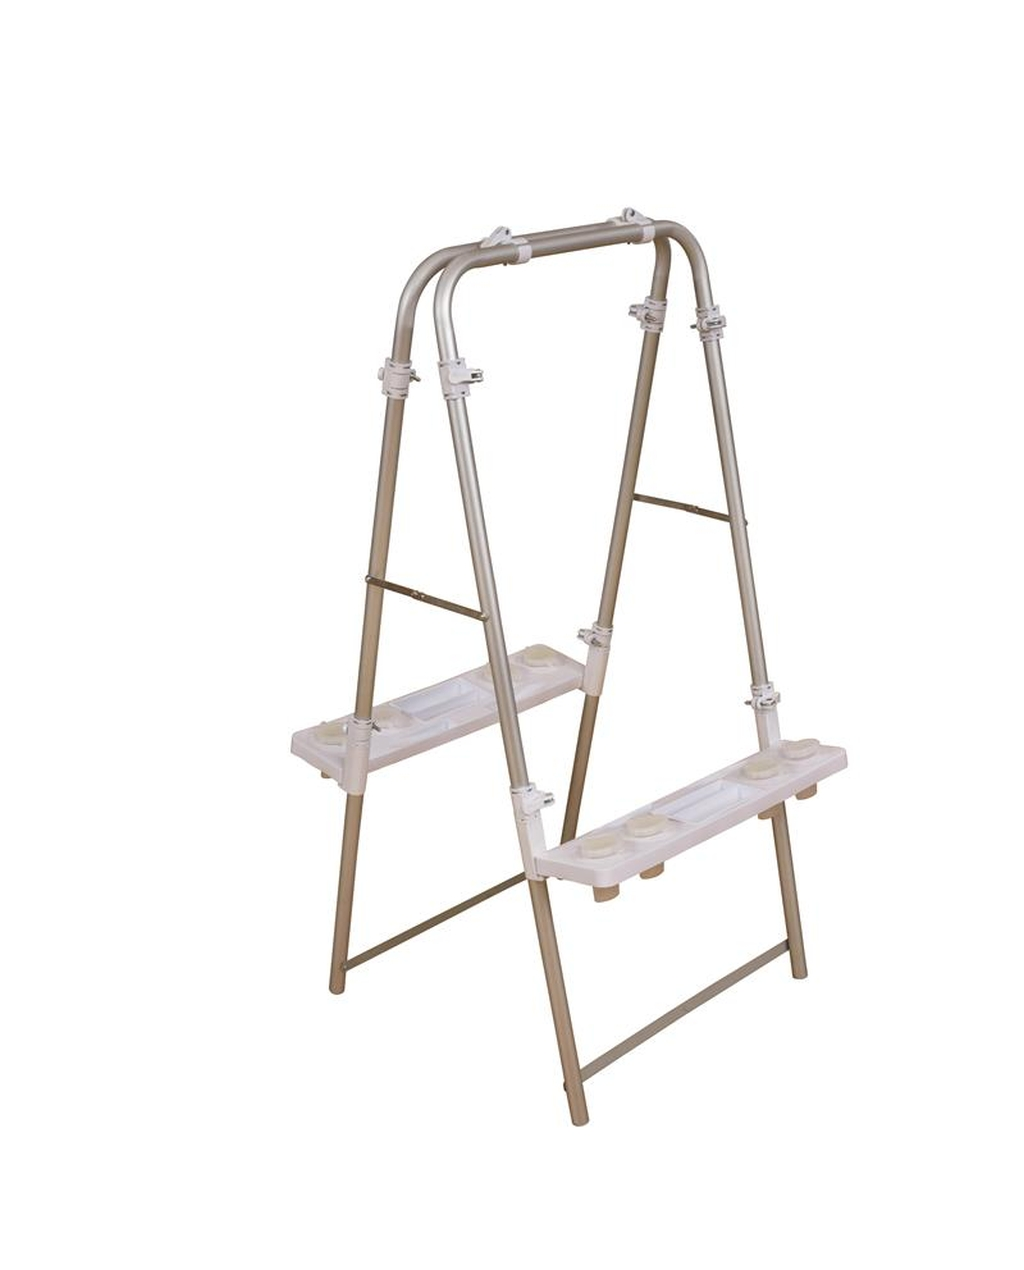 Aluminium Easel - Double Leg Set - 2 Sided